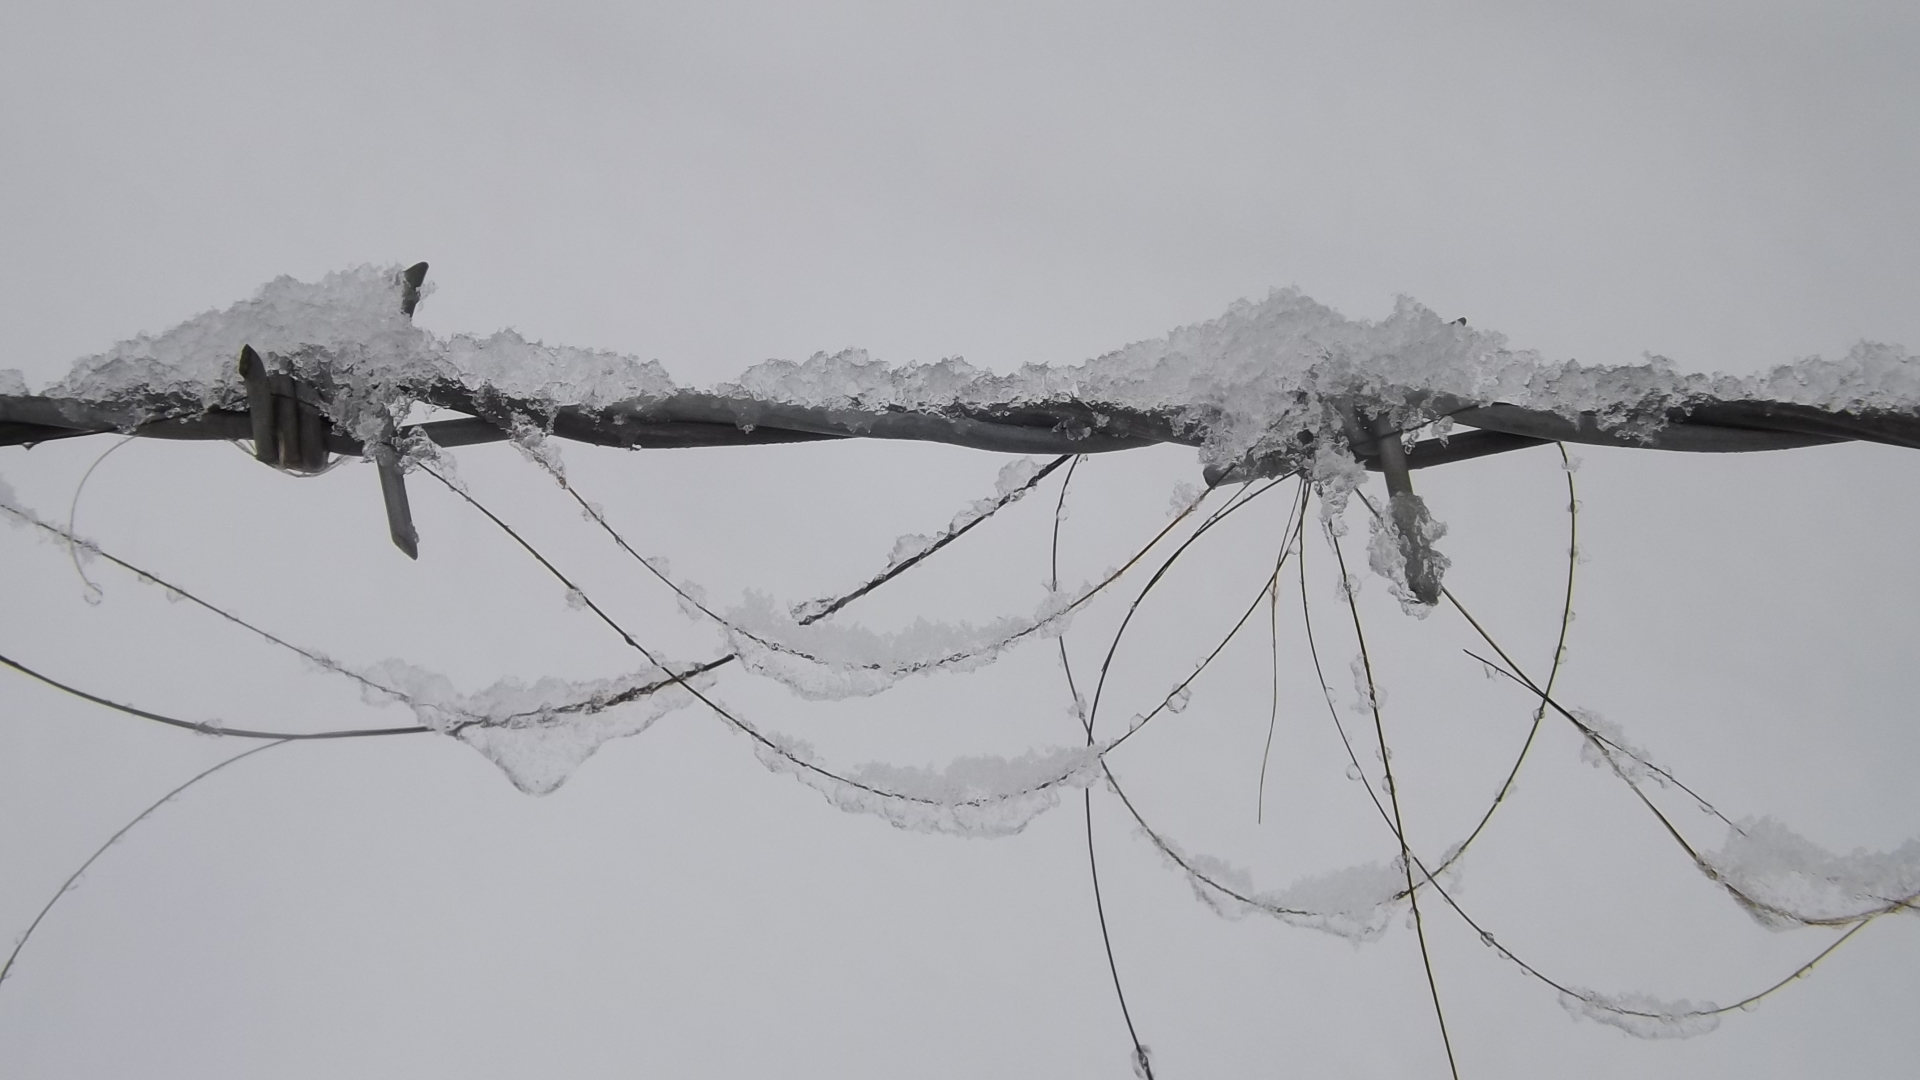 Horse hair left in a barbed wire fence. | derwentvalleyphotography